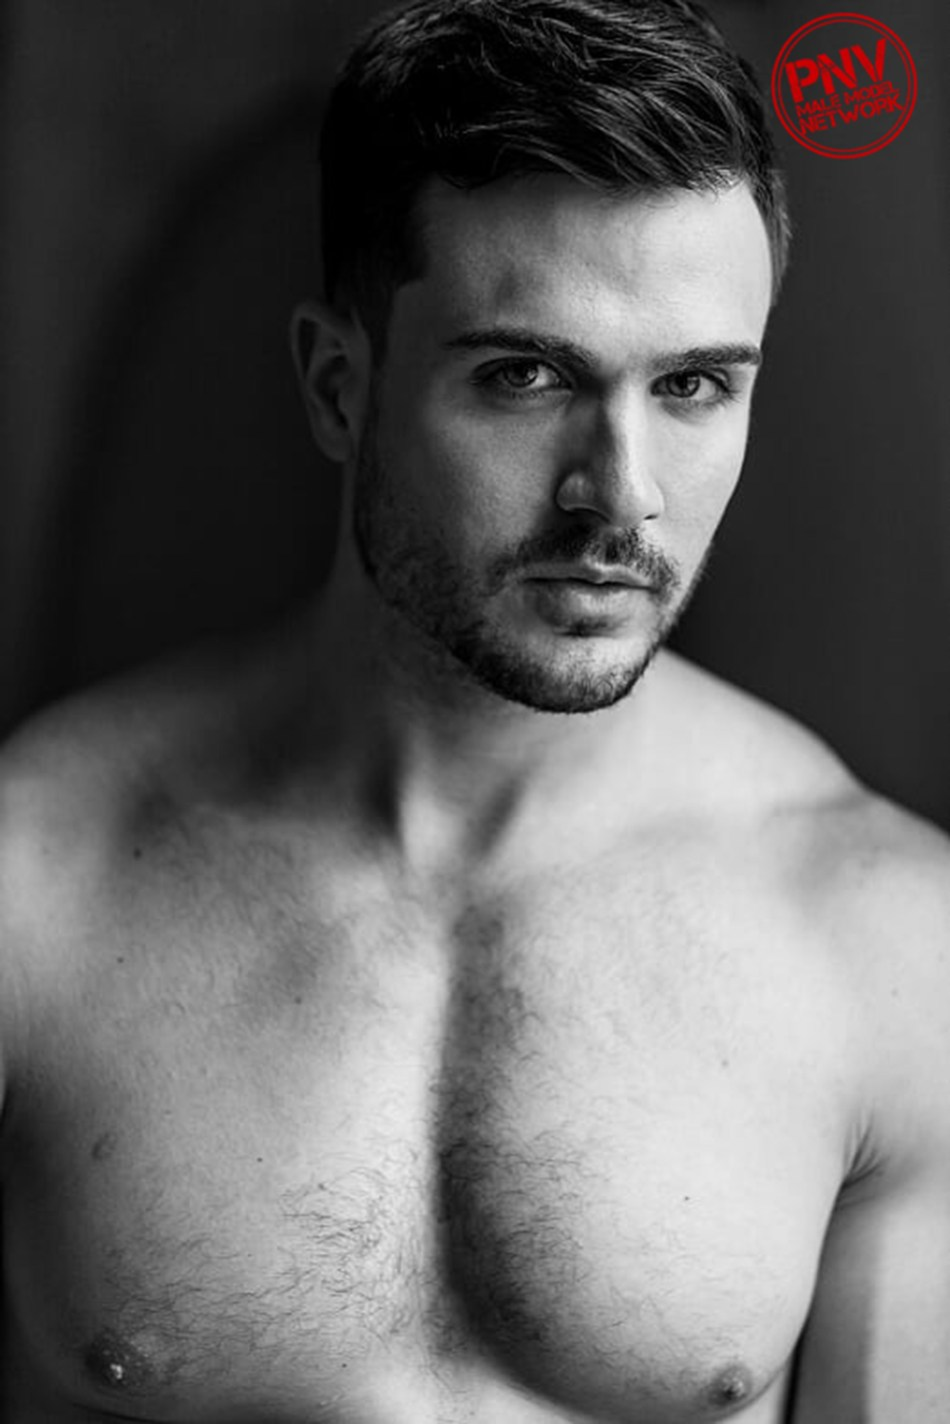 """Ain't No Stoppin'"" – Model Philip Fusco by LensAction - Exclusive PnV"